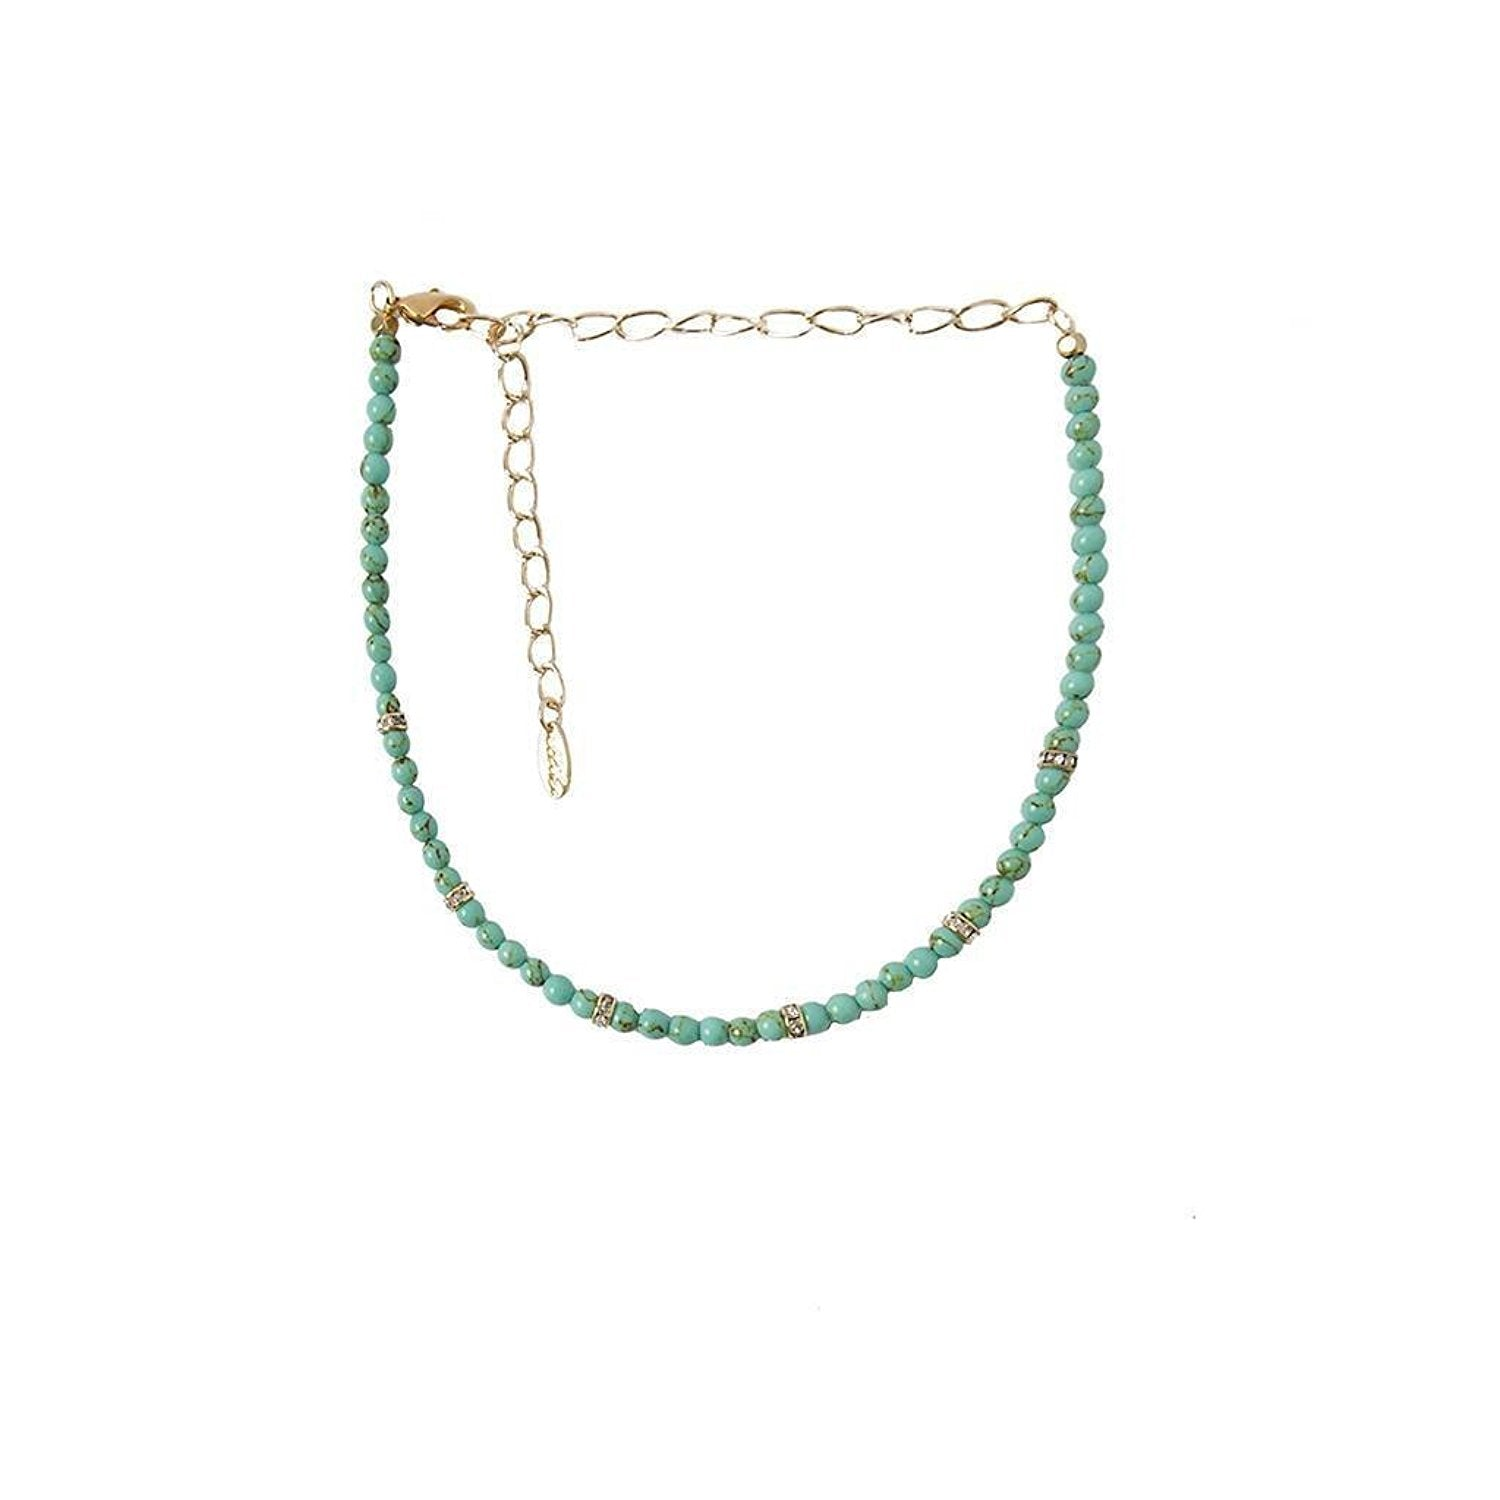 Ettika Mean One Thing Gold Tone and Turquoise Beaded Choker Necklace